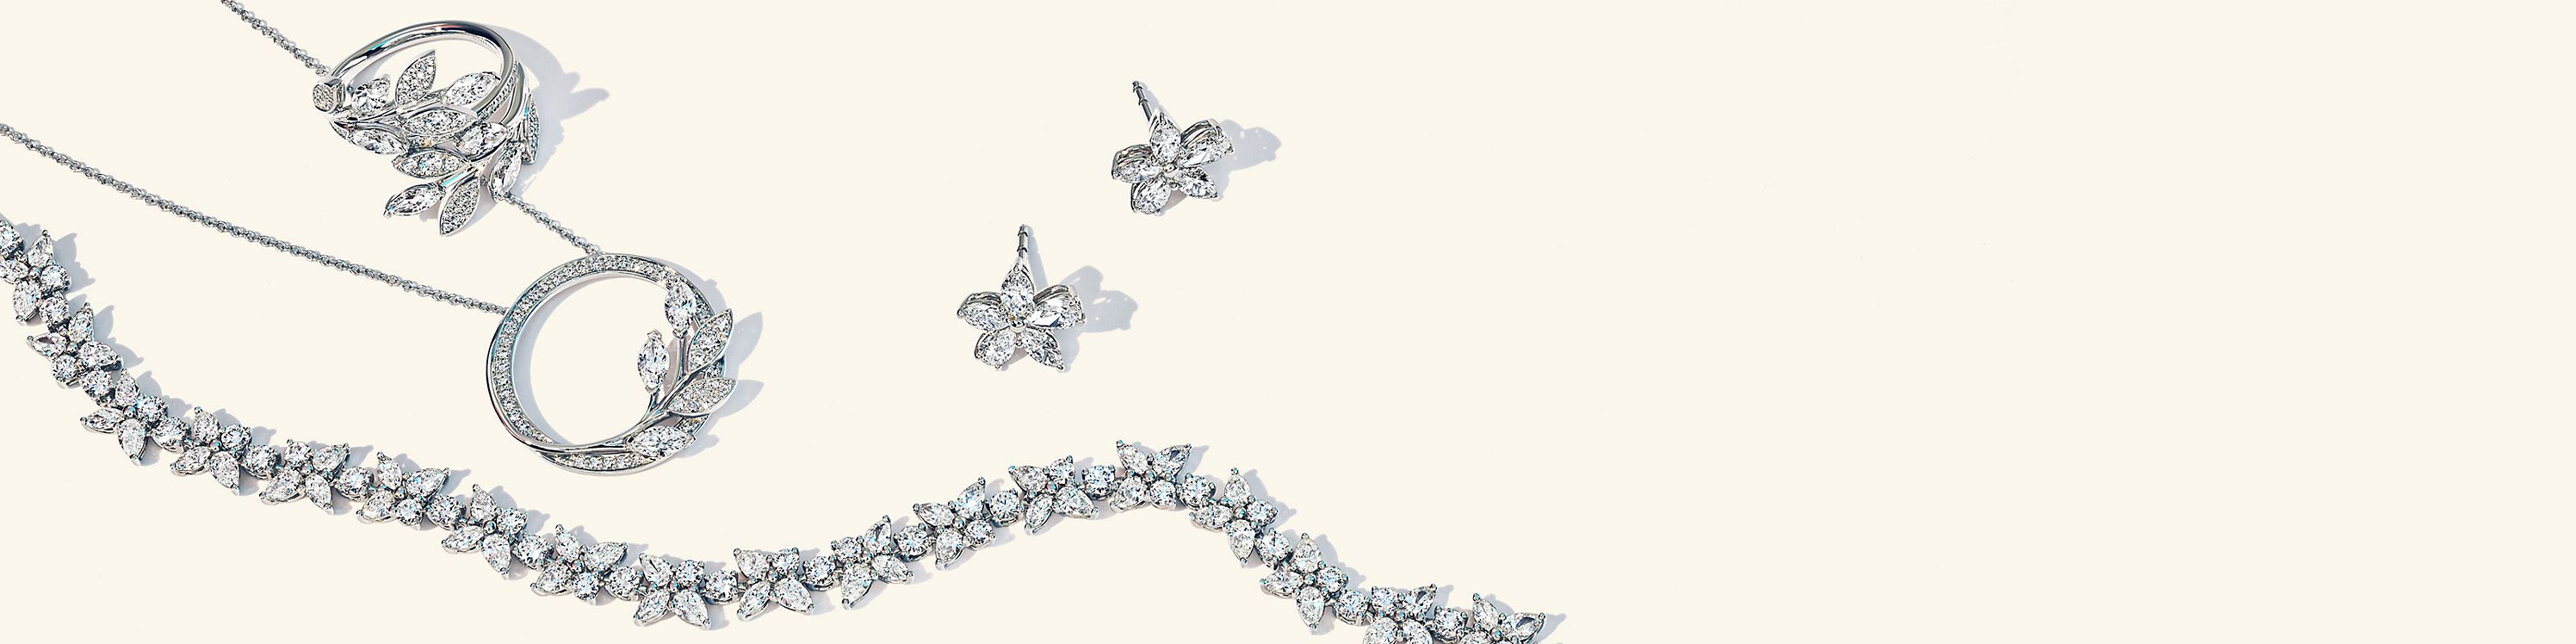 Tiffany Victoria™ Jewellery